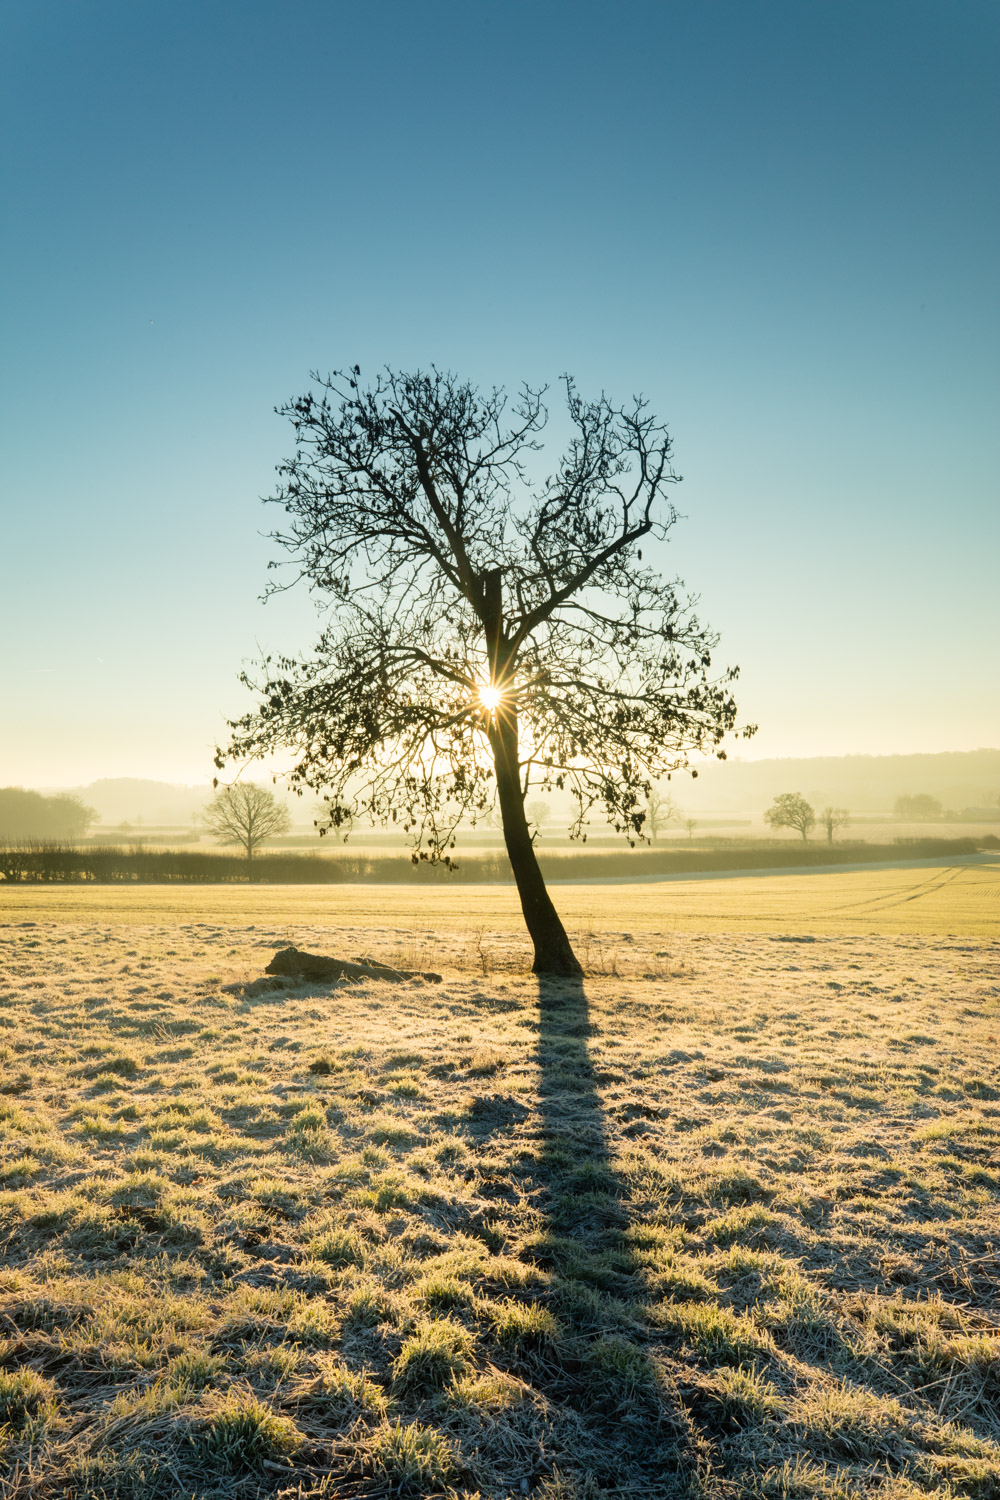 5 tips for capturing nature across different seasons